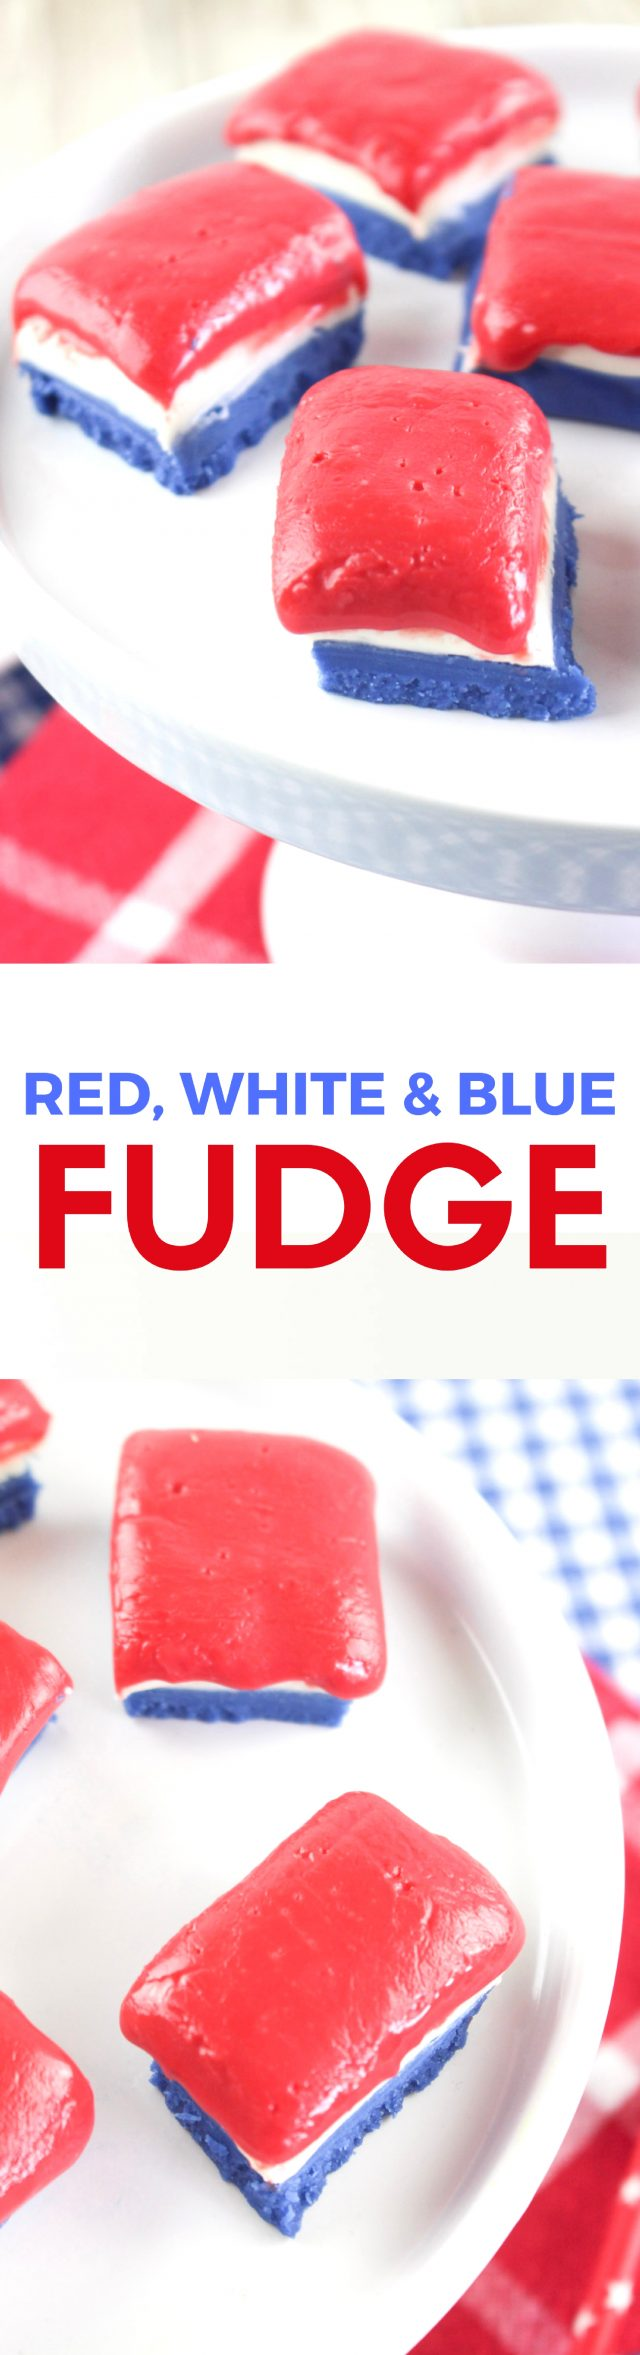 Red, White and Blue Patriotic Fudge Recipe - If you're still deciding on what dessert to make on July 4th, let me recommend this deliciously sweet red, white and blue patriotic fudge!